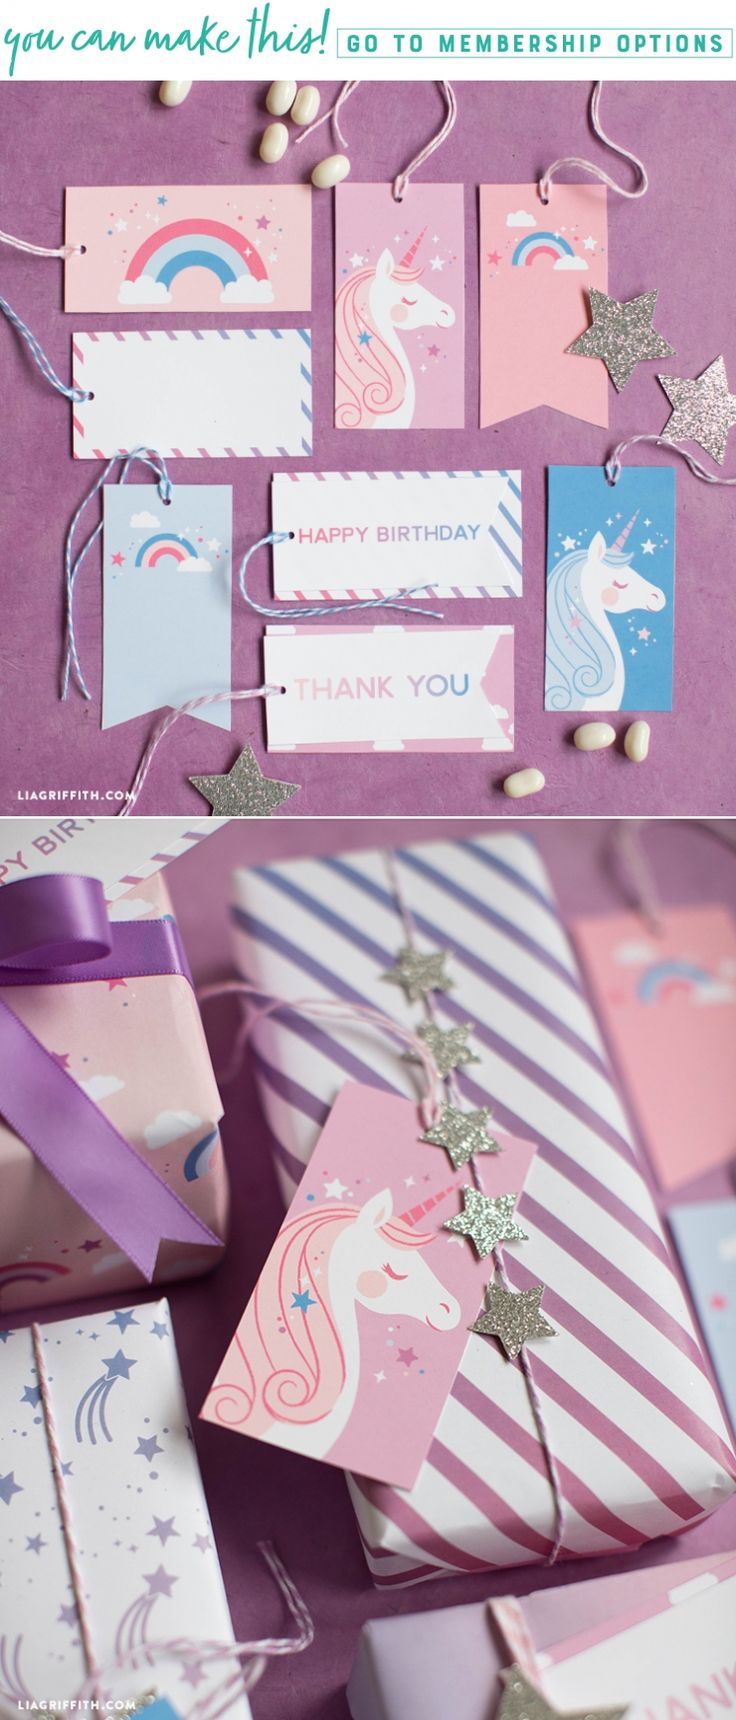 Tags That Dazzle ✨ We've created these printable unicorn gift tags to add some special sparkle to the tops of your gifts. These gift tags pair perfectly with our printable unicorn wrapping paper. Combine the two together for your next celebration and you're sure to have them reaching for your gifts first. https://liagriffith.com/printable-unicorn-gift-tags/ * * * #unicorn #printable #printables #gift #gifts #giftags #unicornpower #unicorns #unicornios #paper #diyparty #papercut #paperlove…